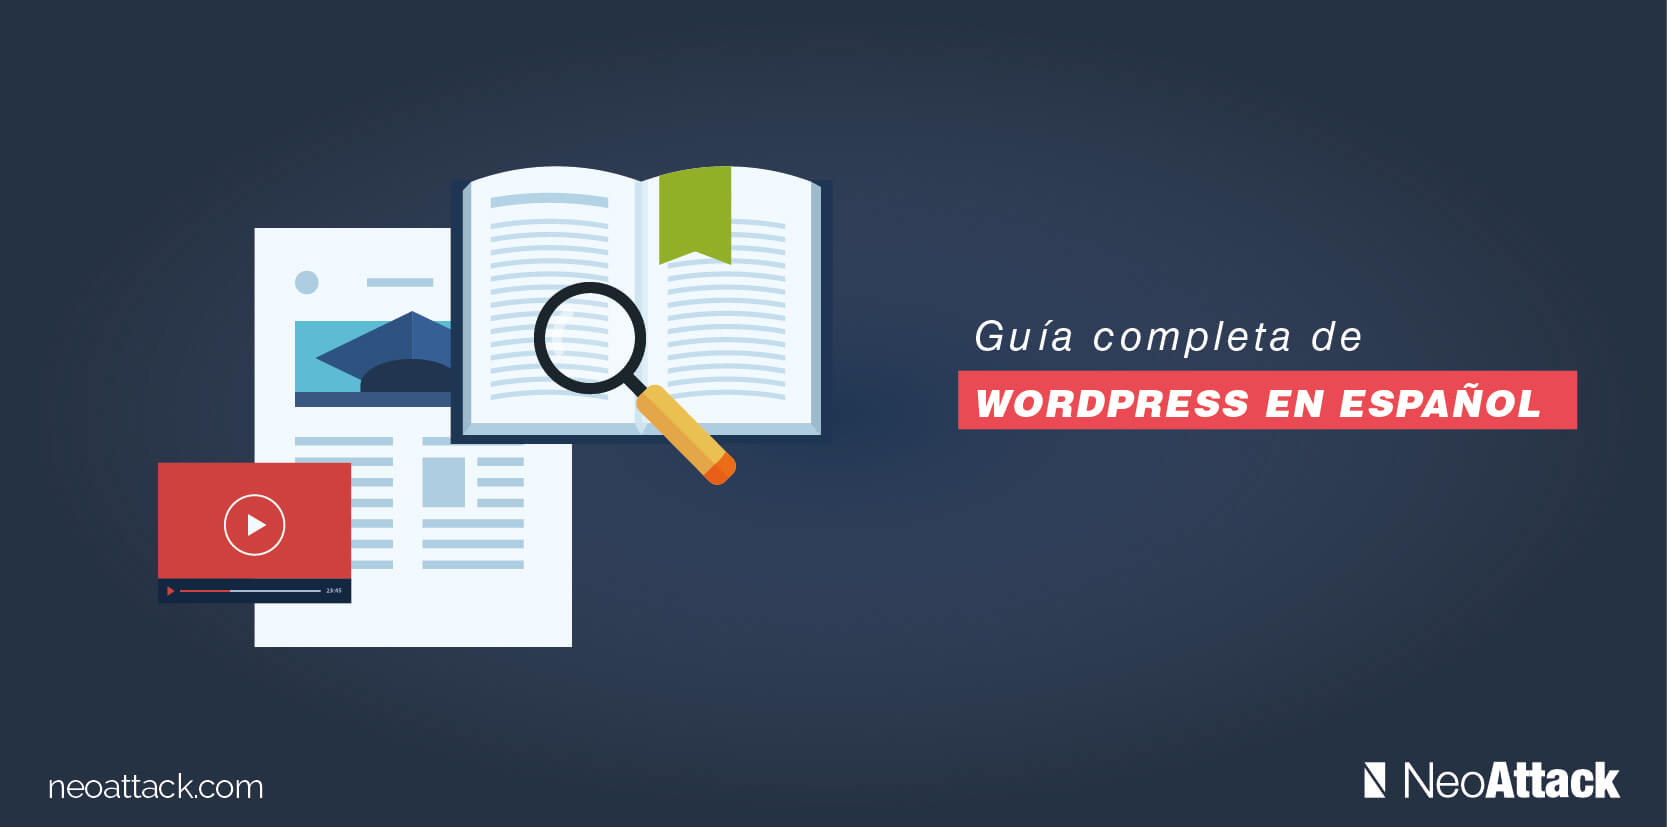 guia-wordpress-espanol